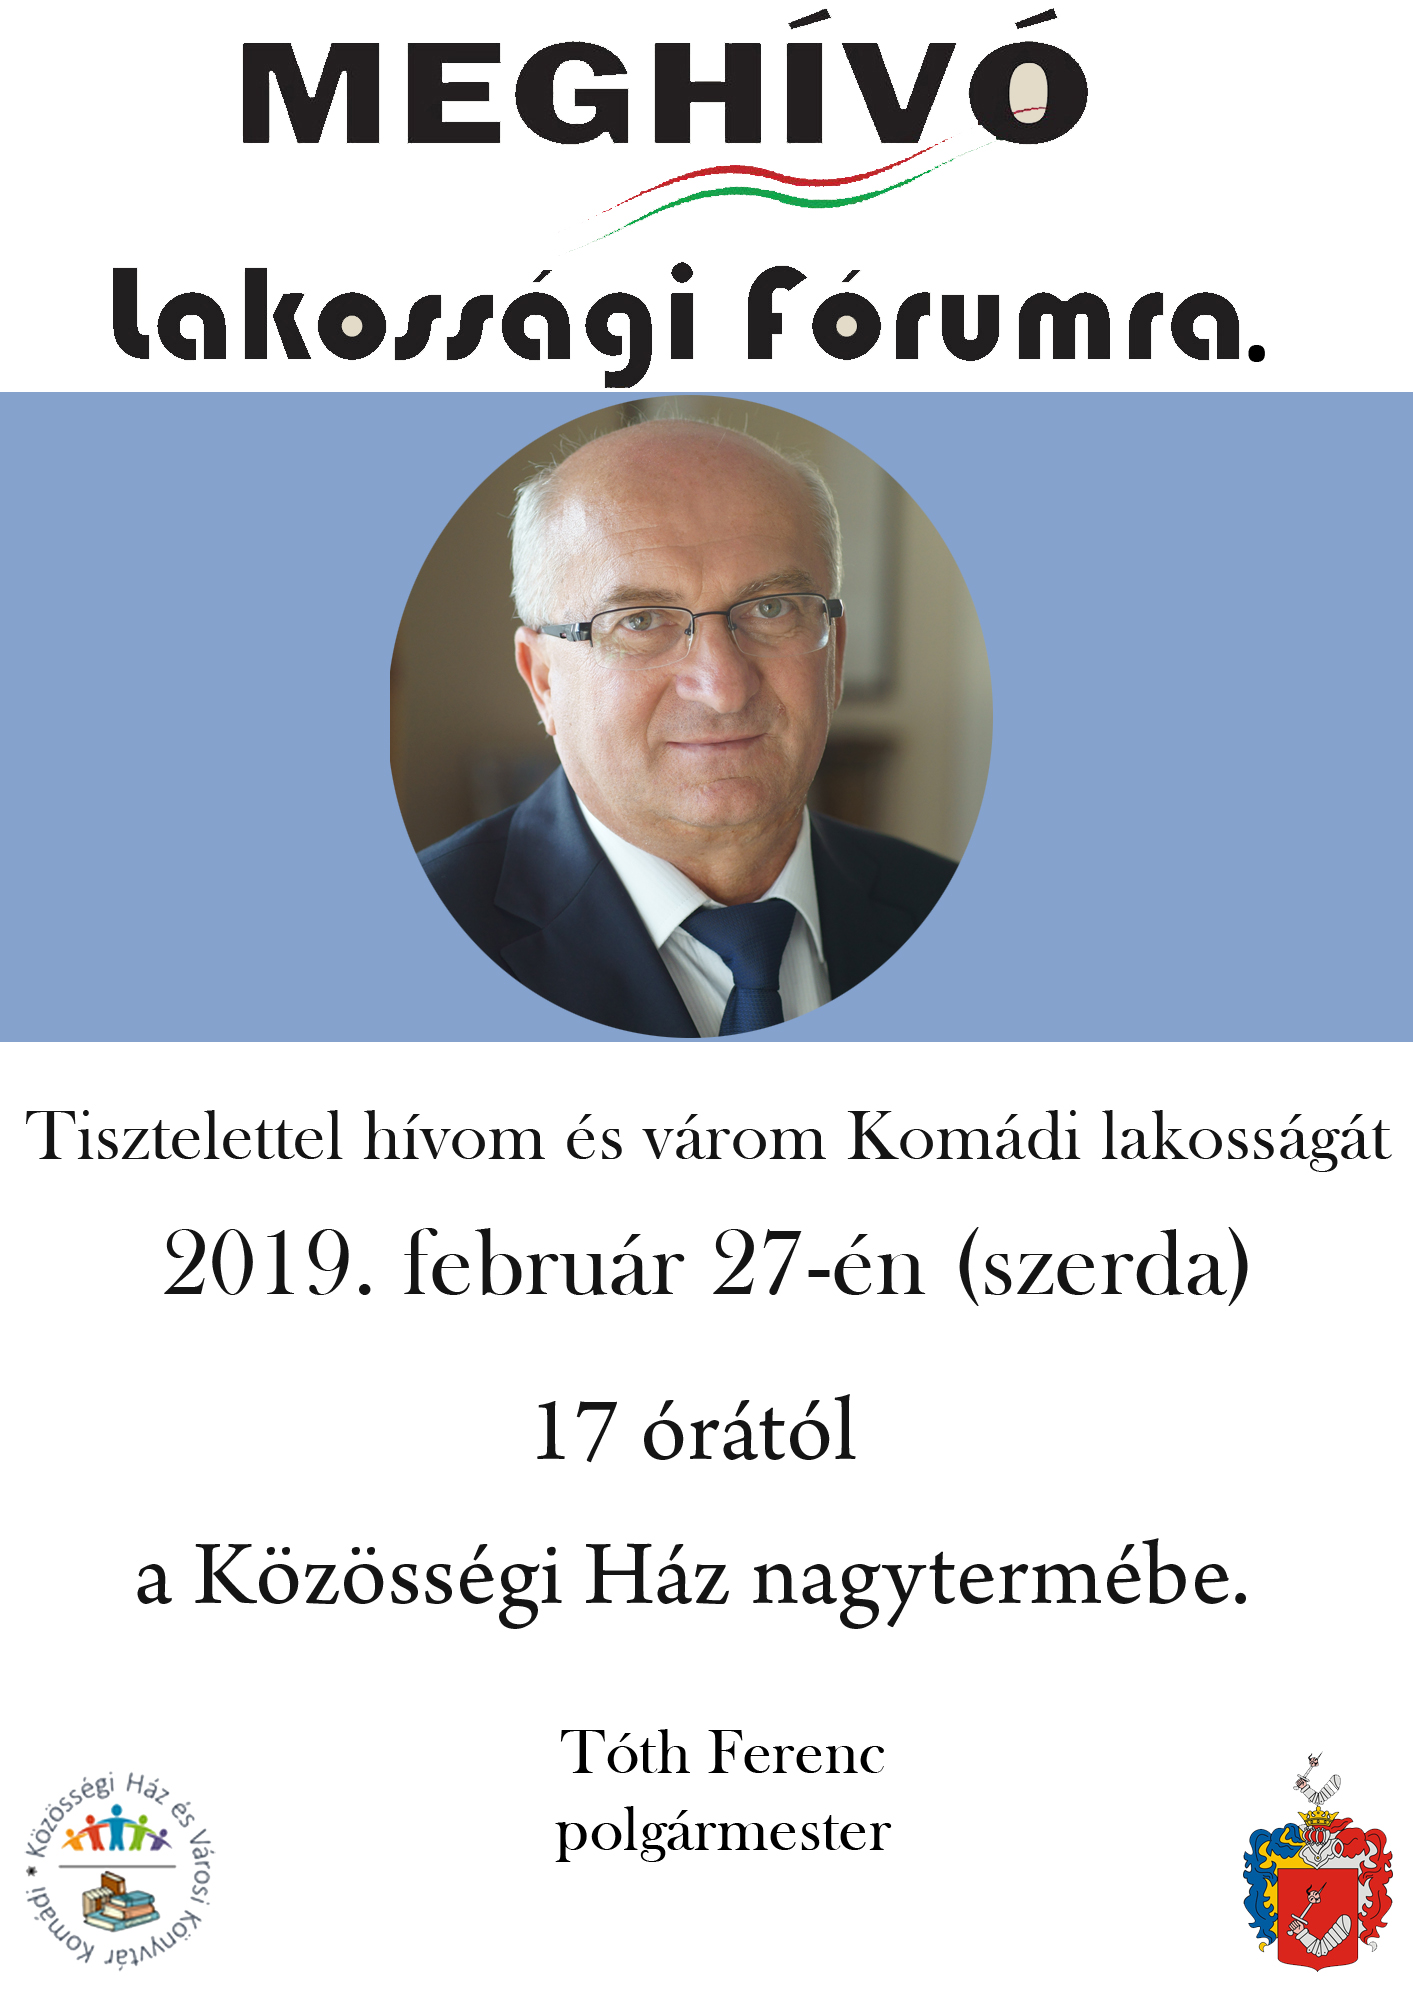 lakossagi forum 2 msolata